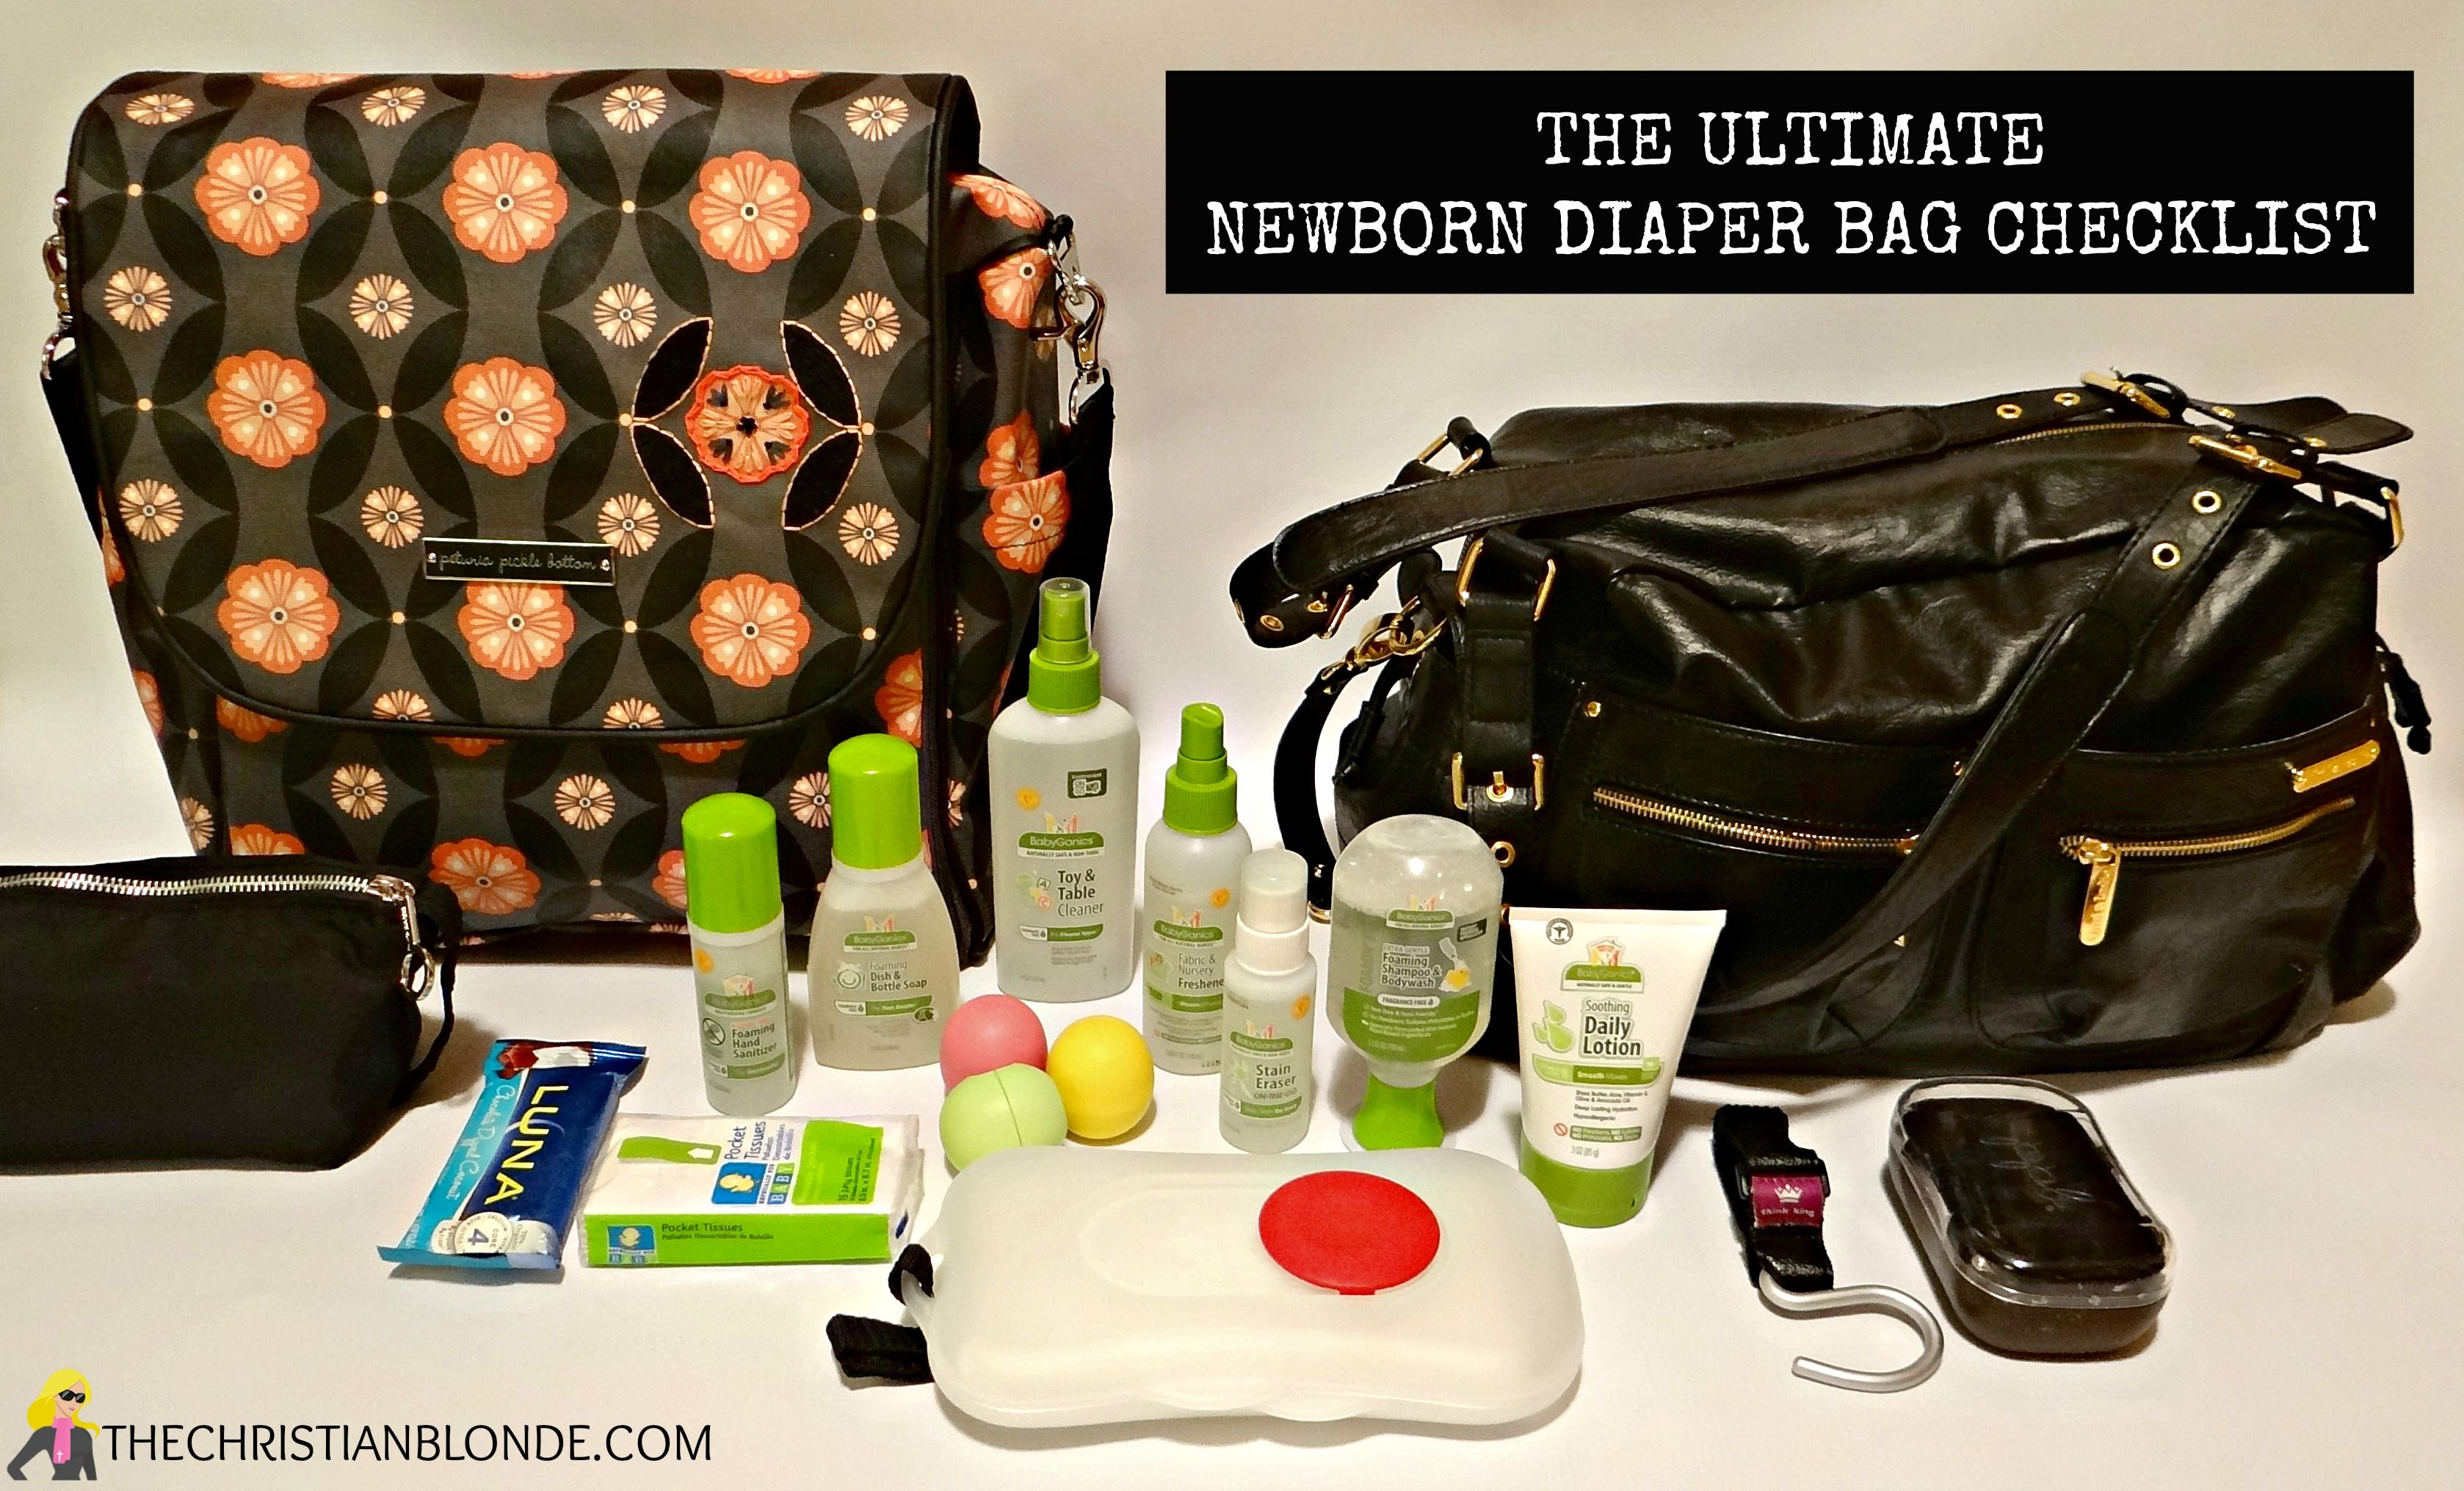 The Ultimate Diaper Bag Checklist For Newborns Free Printable Best And Most Detailed List